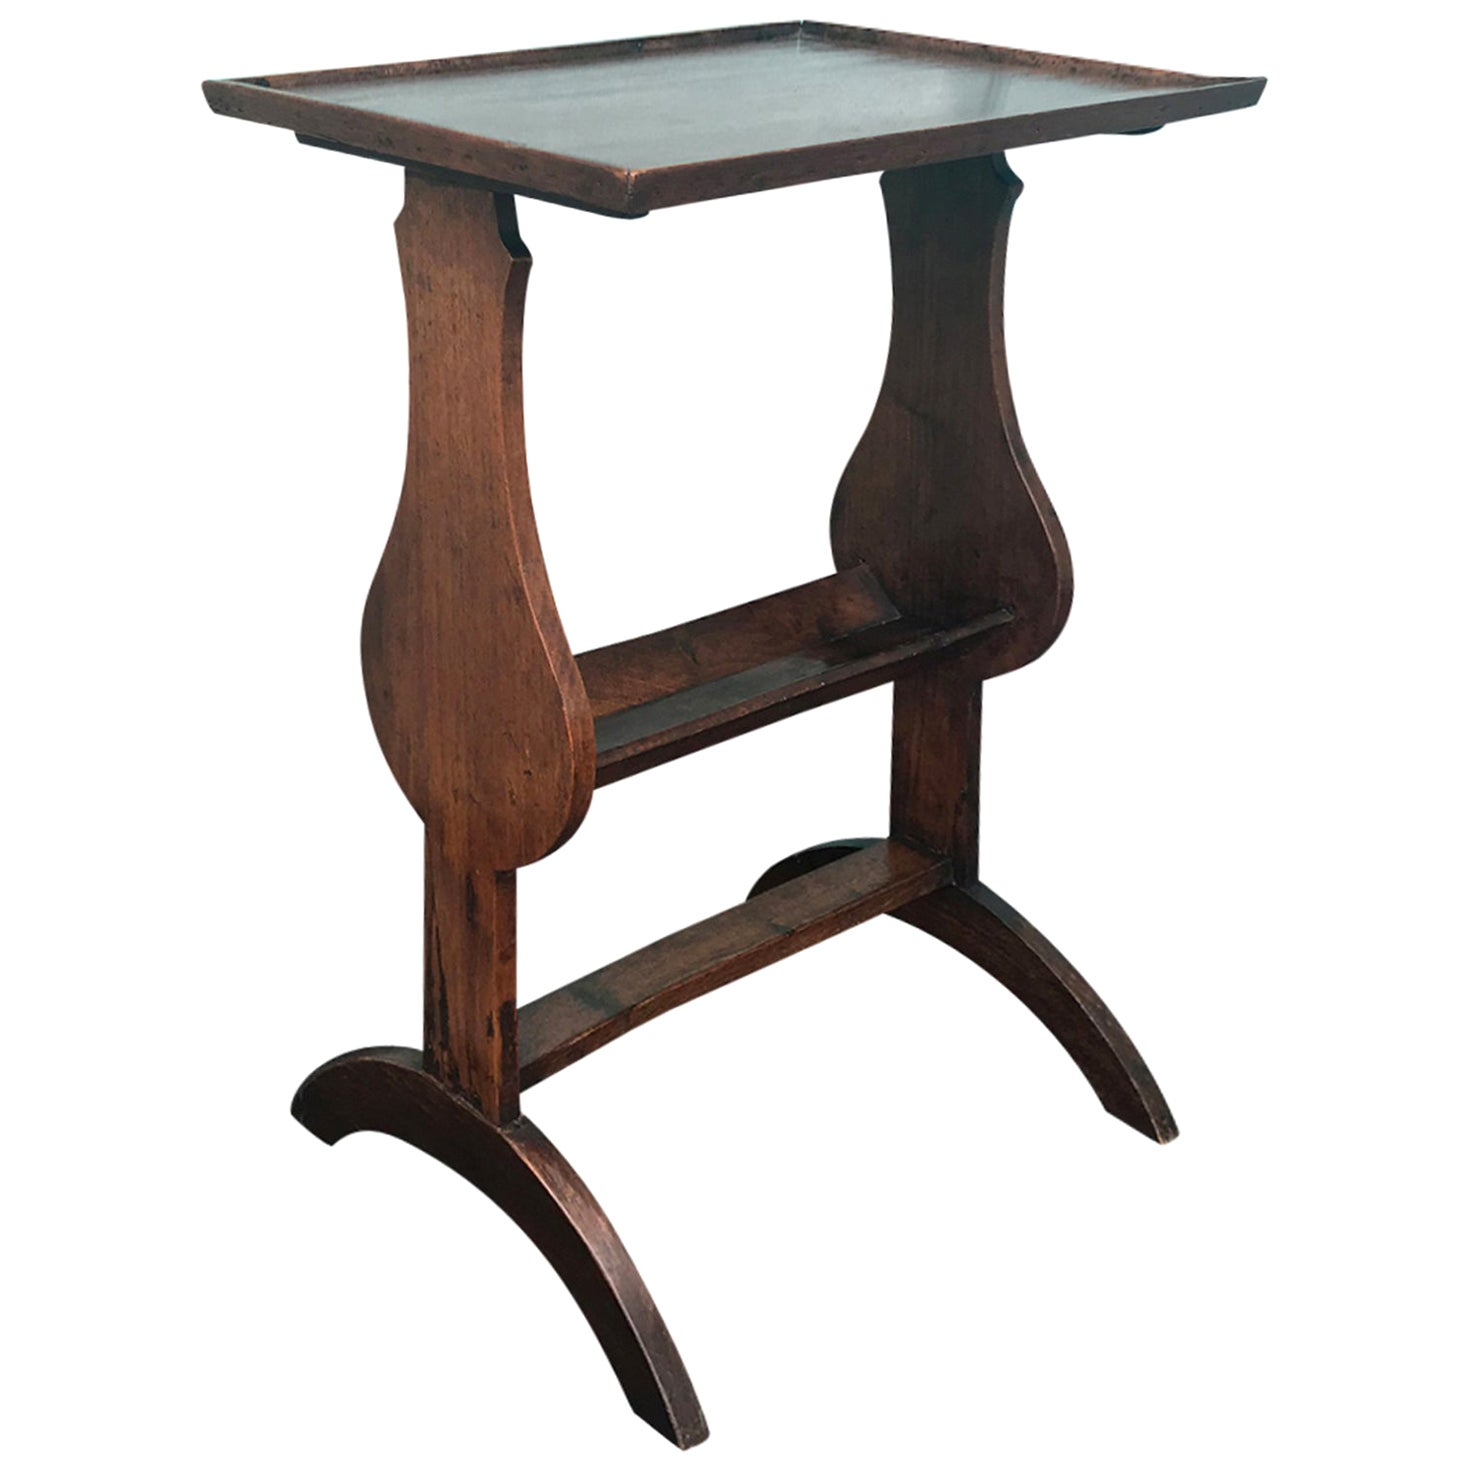 18th-19th Century French Fruitwood Side Table